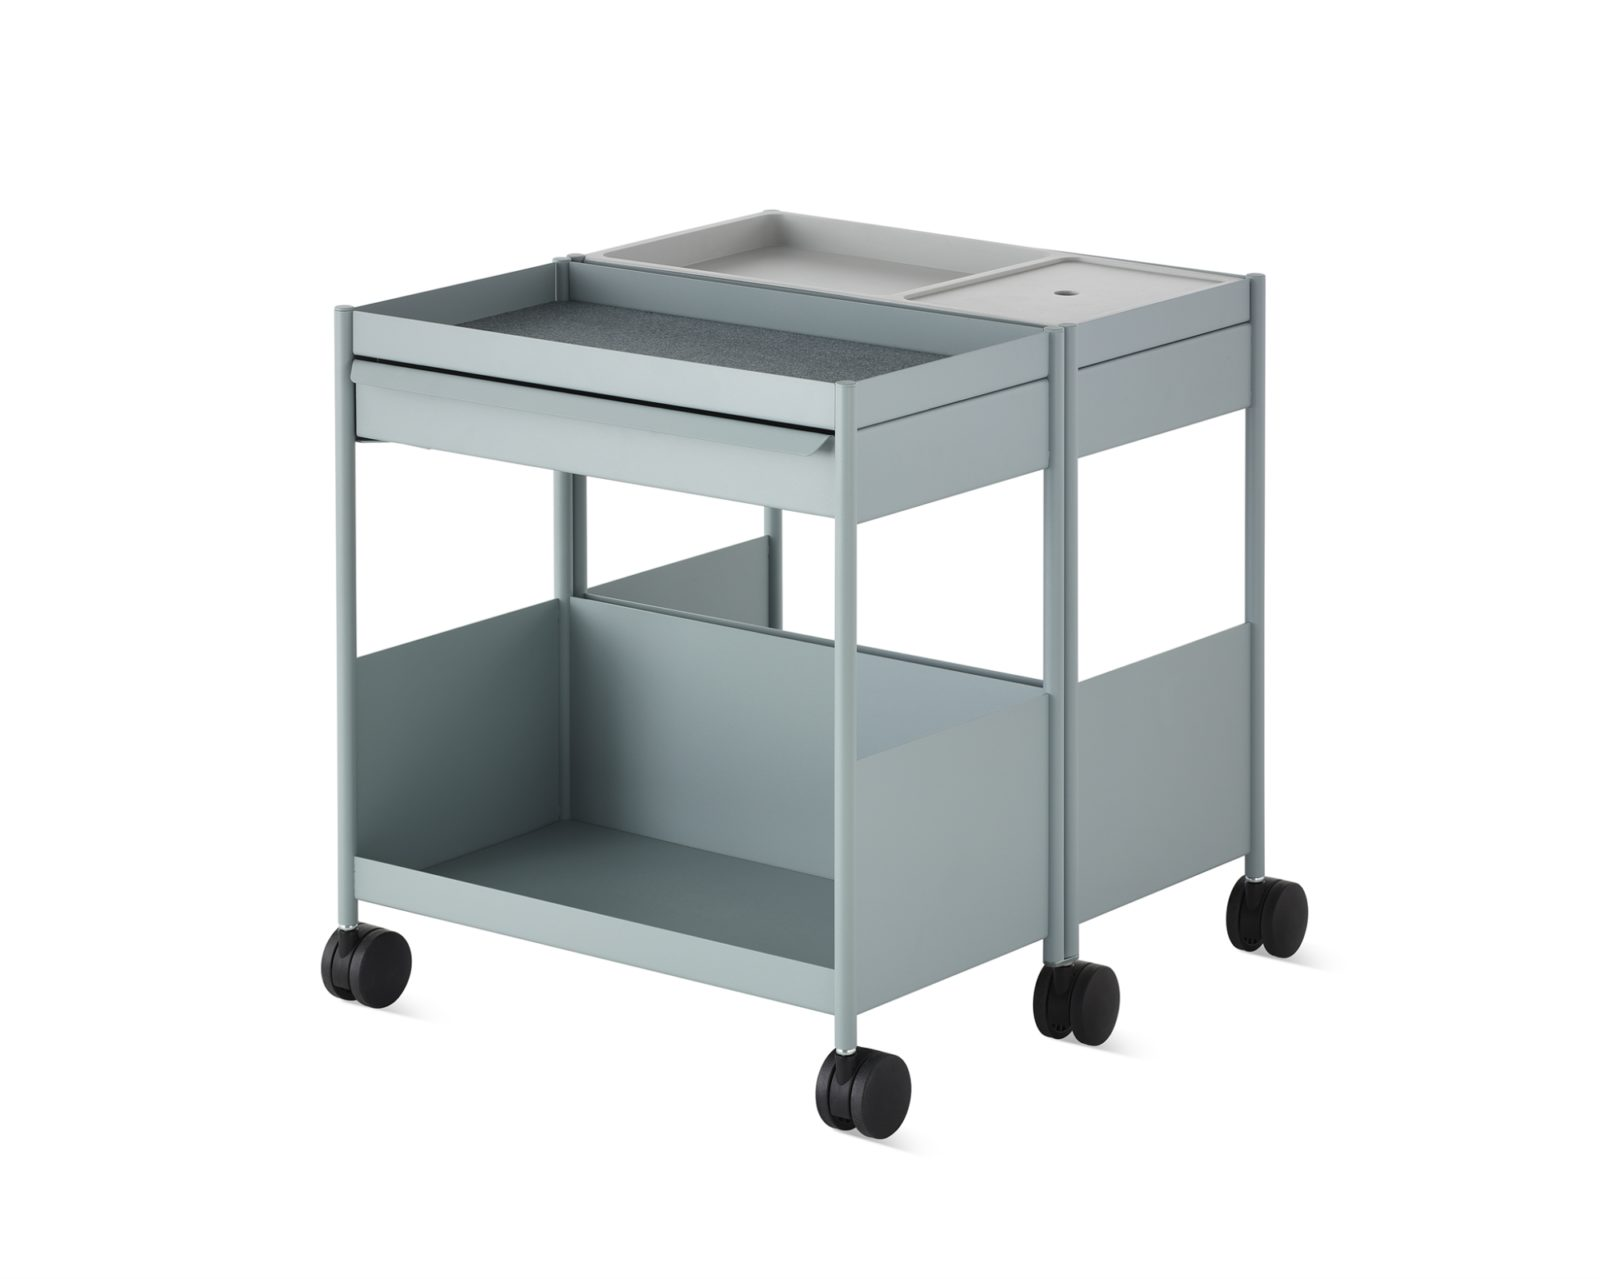 A light blue mobile duel OE1 Storage Trolley each with open tops, small top drawers, and open bottom shelves mirrored on both sides to serve two people.